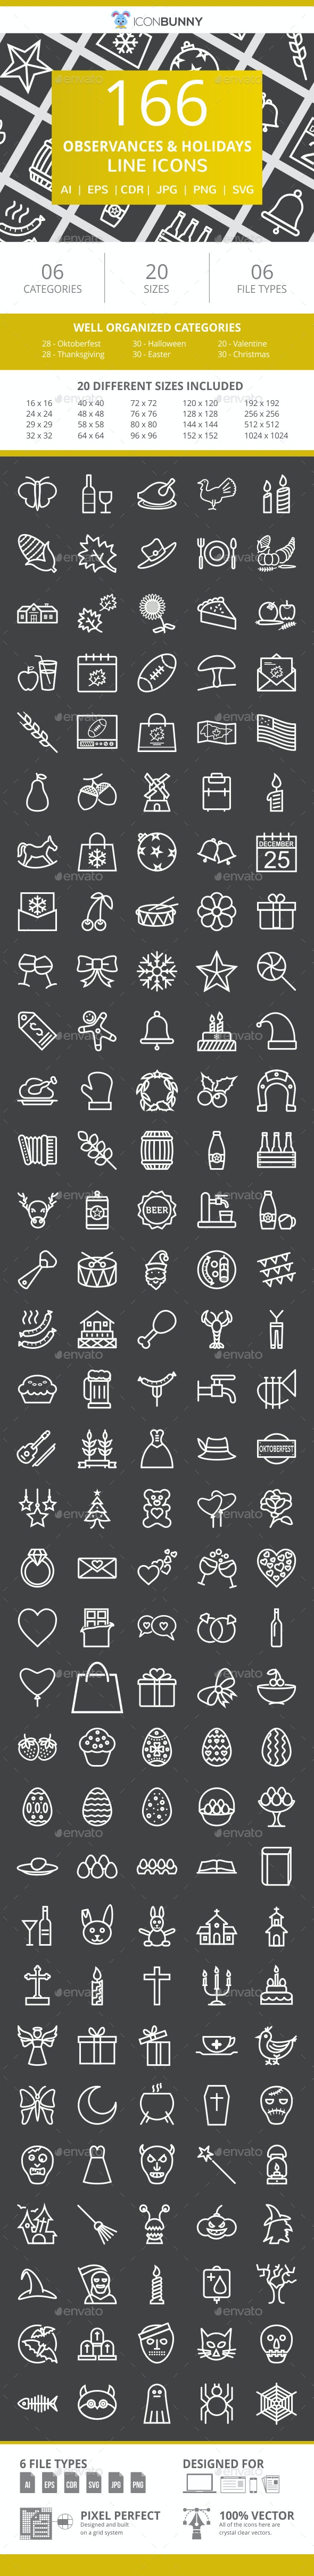 166 Observances & Holiday Line Inverted Icons - Icons